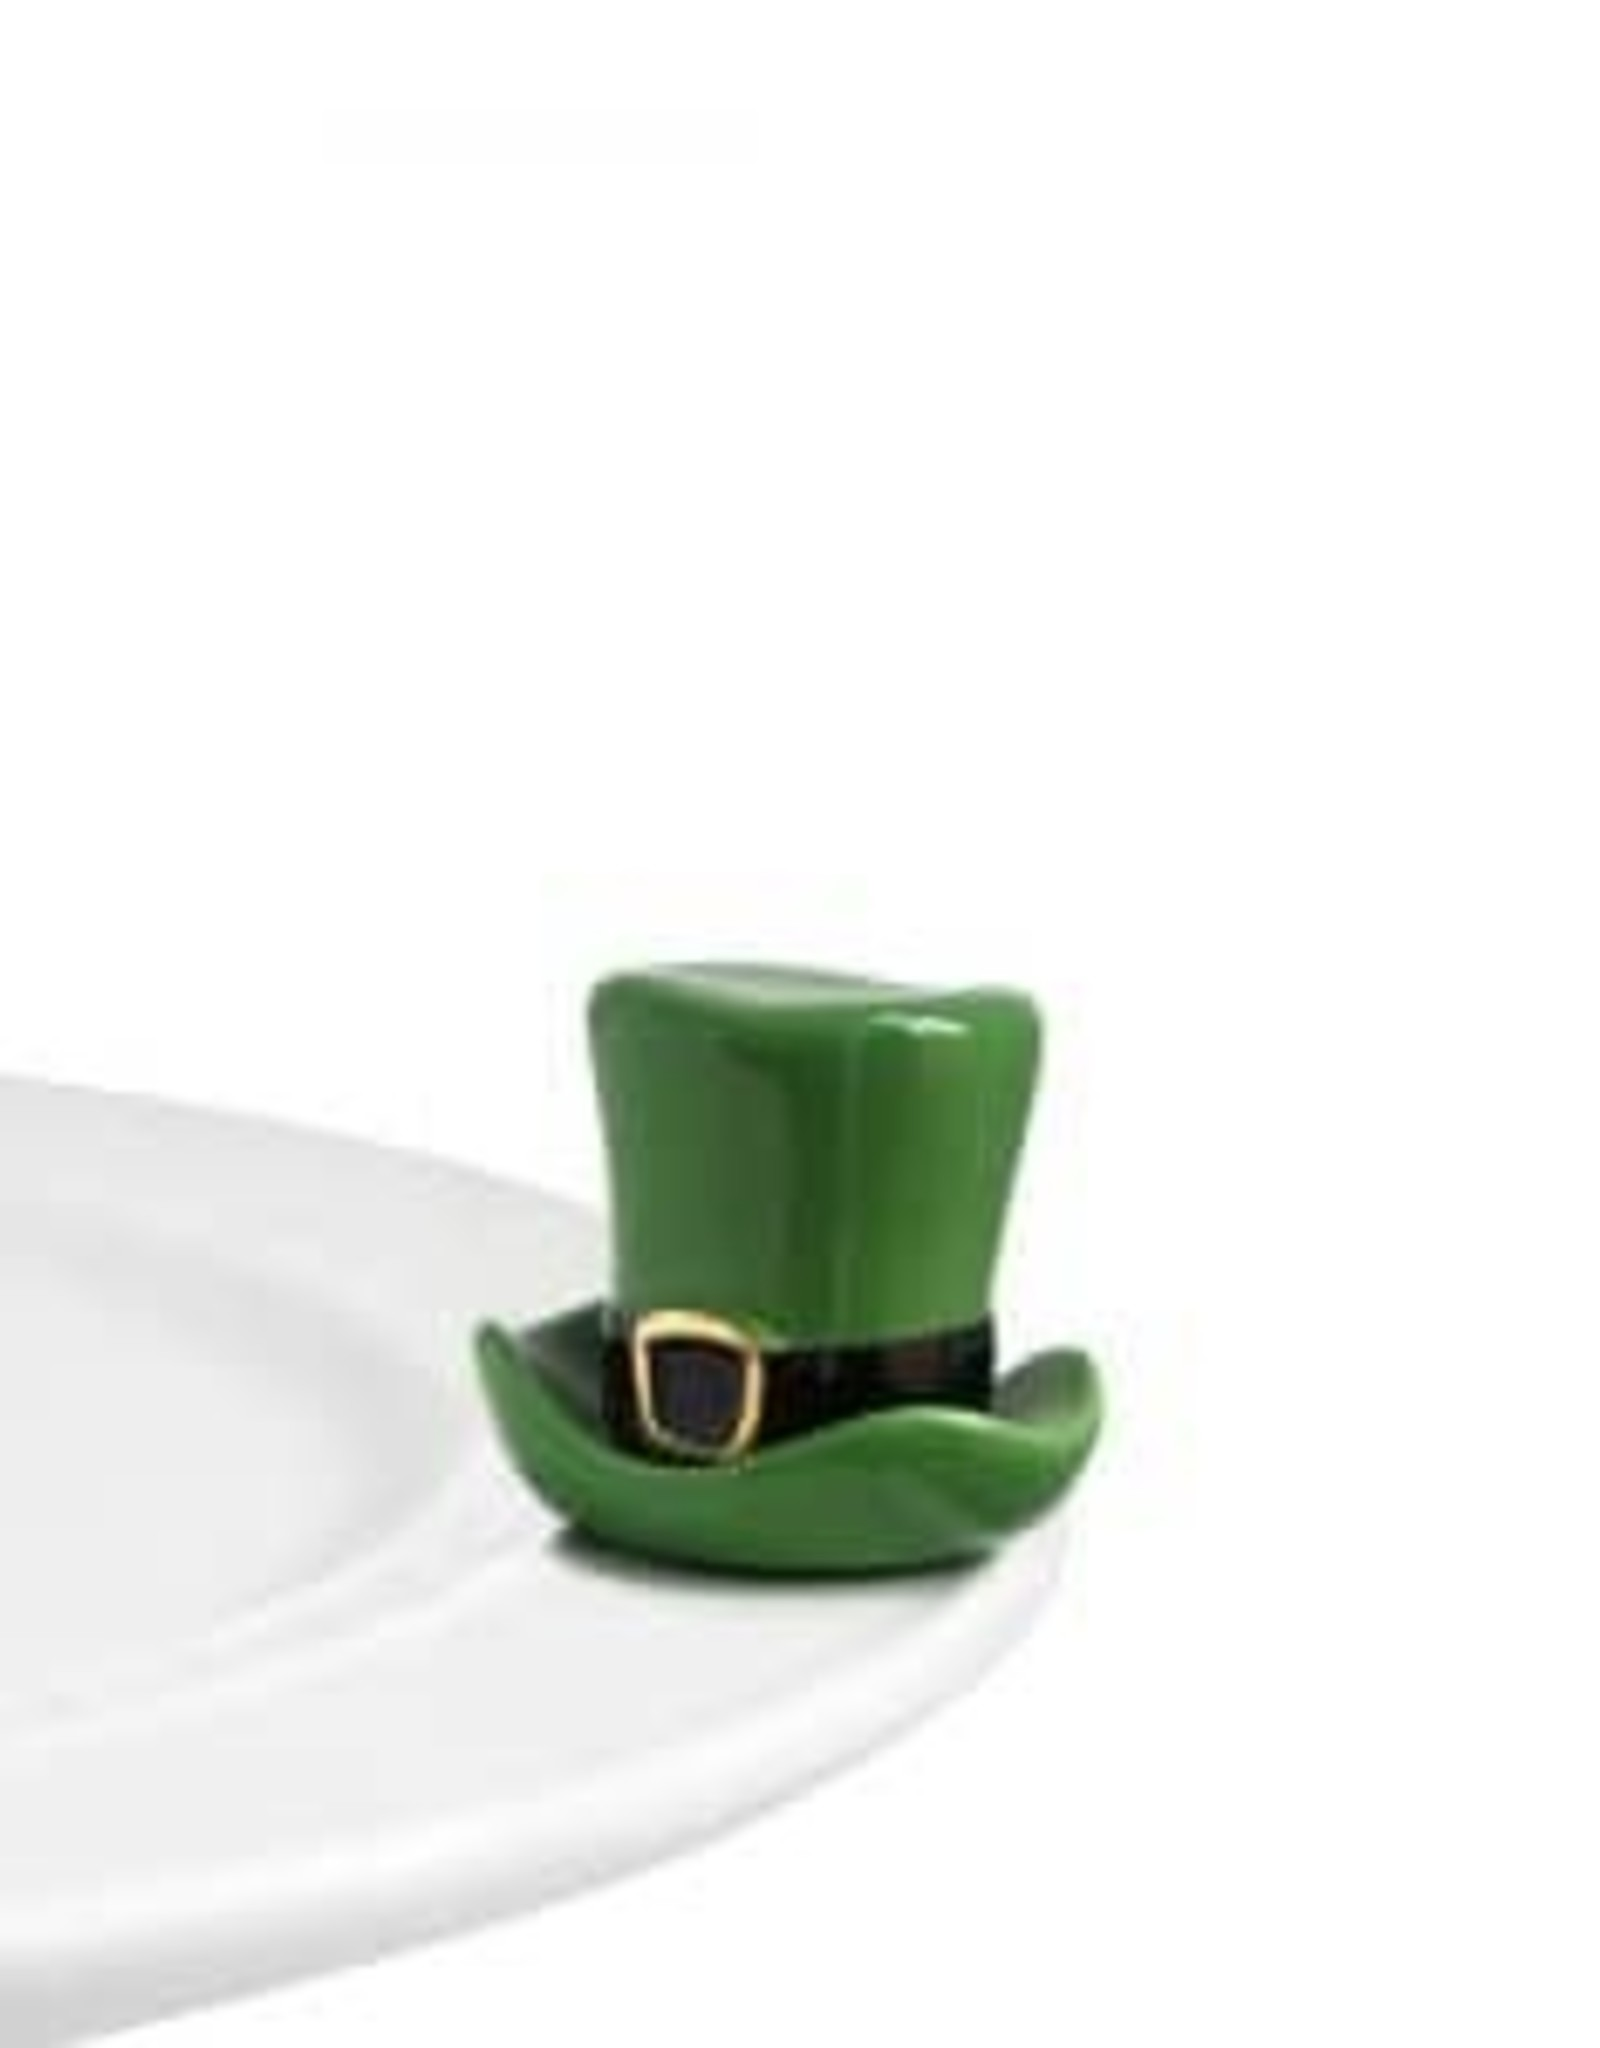 Nora Fleming spot o' irish (hat mini)